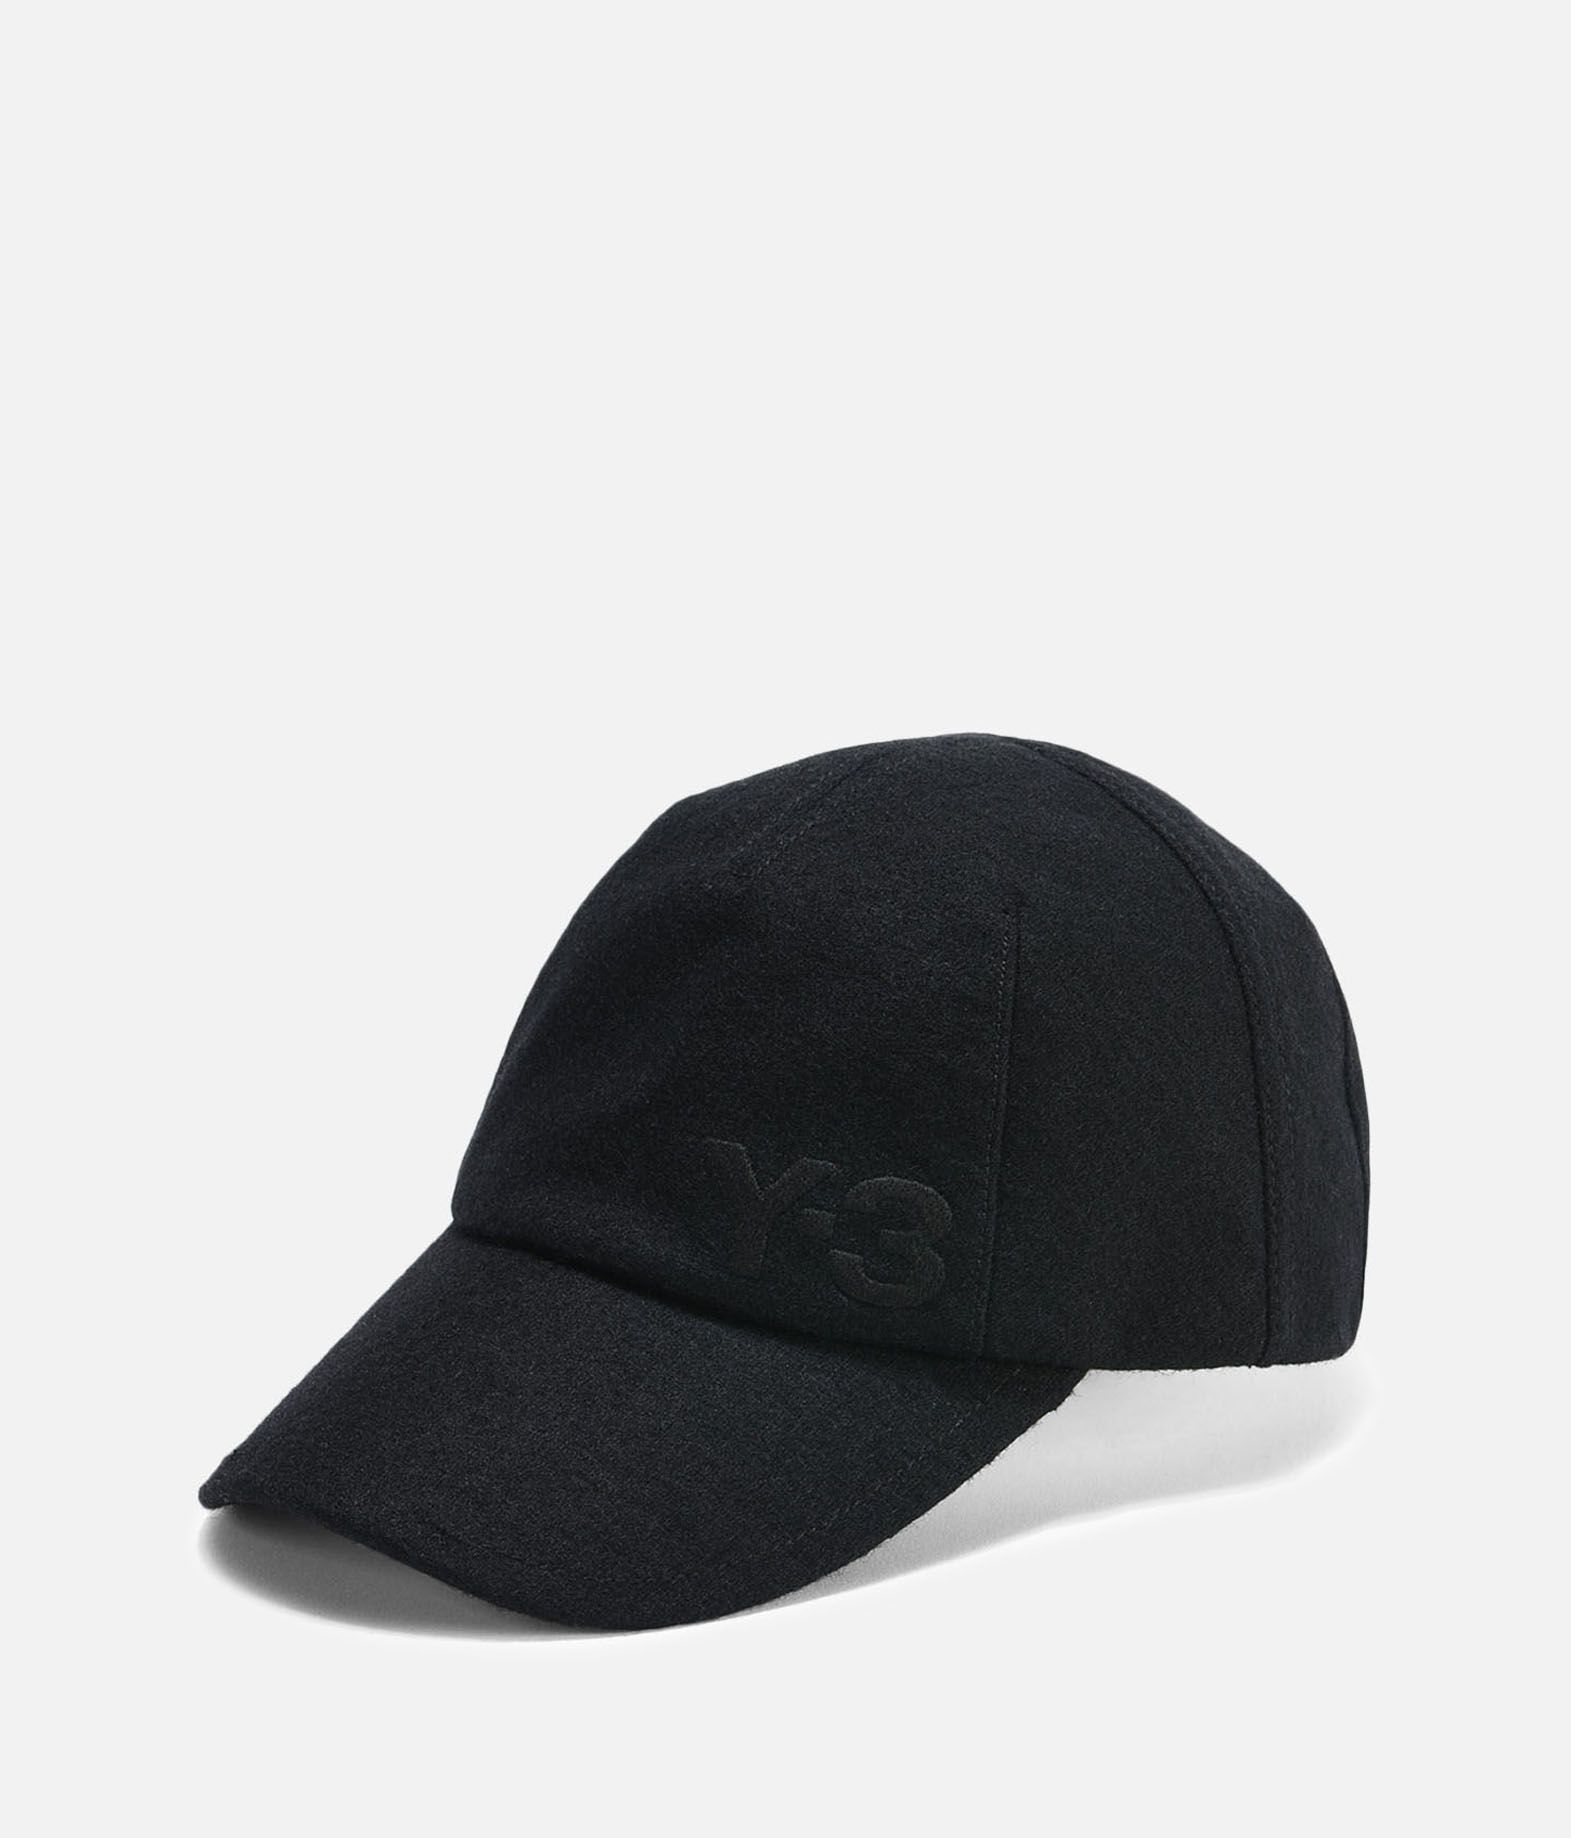 Y-3 Y-3 Winter Cap Cap E f